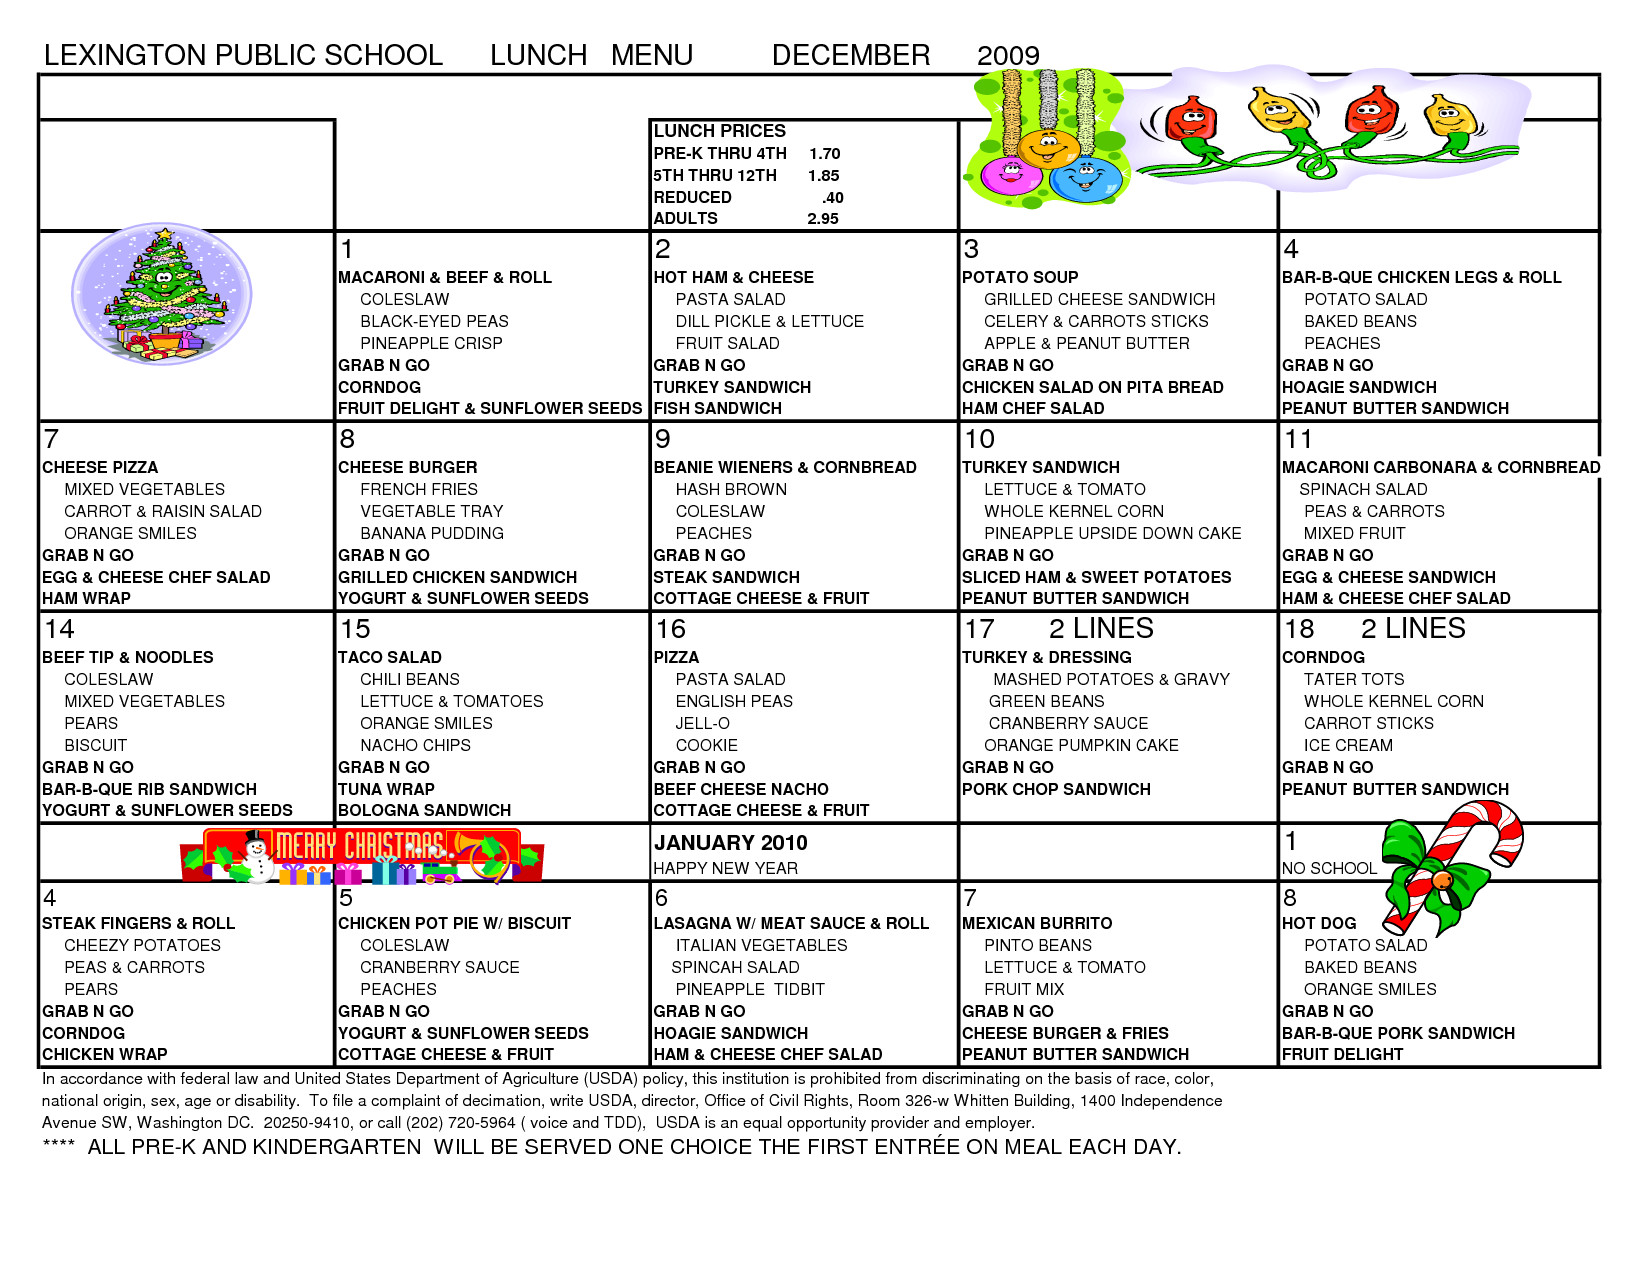 School Lunch Menu Template Template for School Lunch Menu